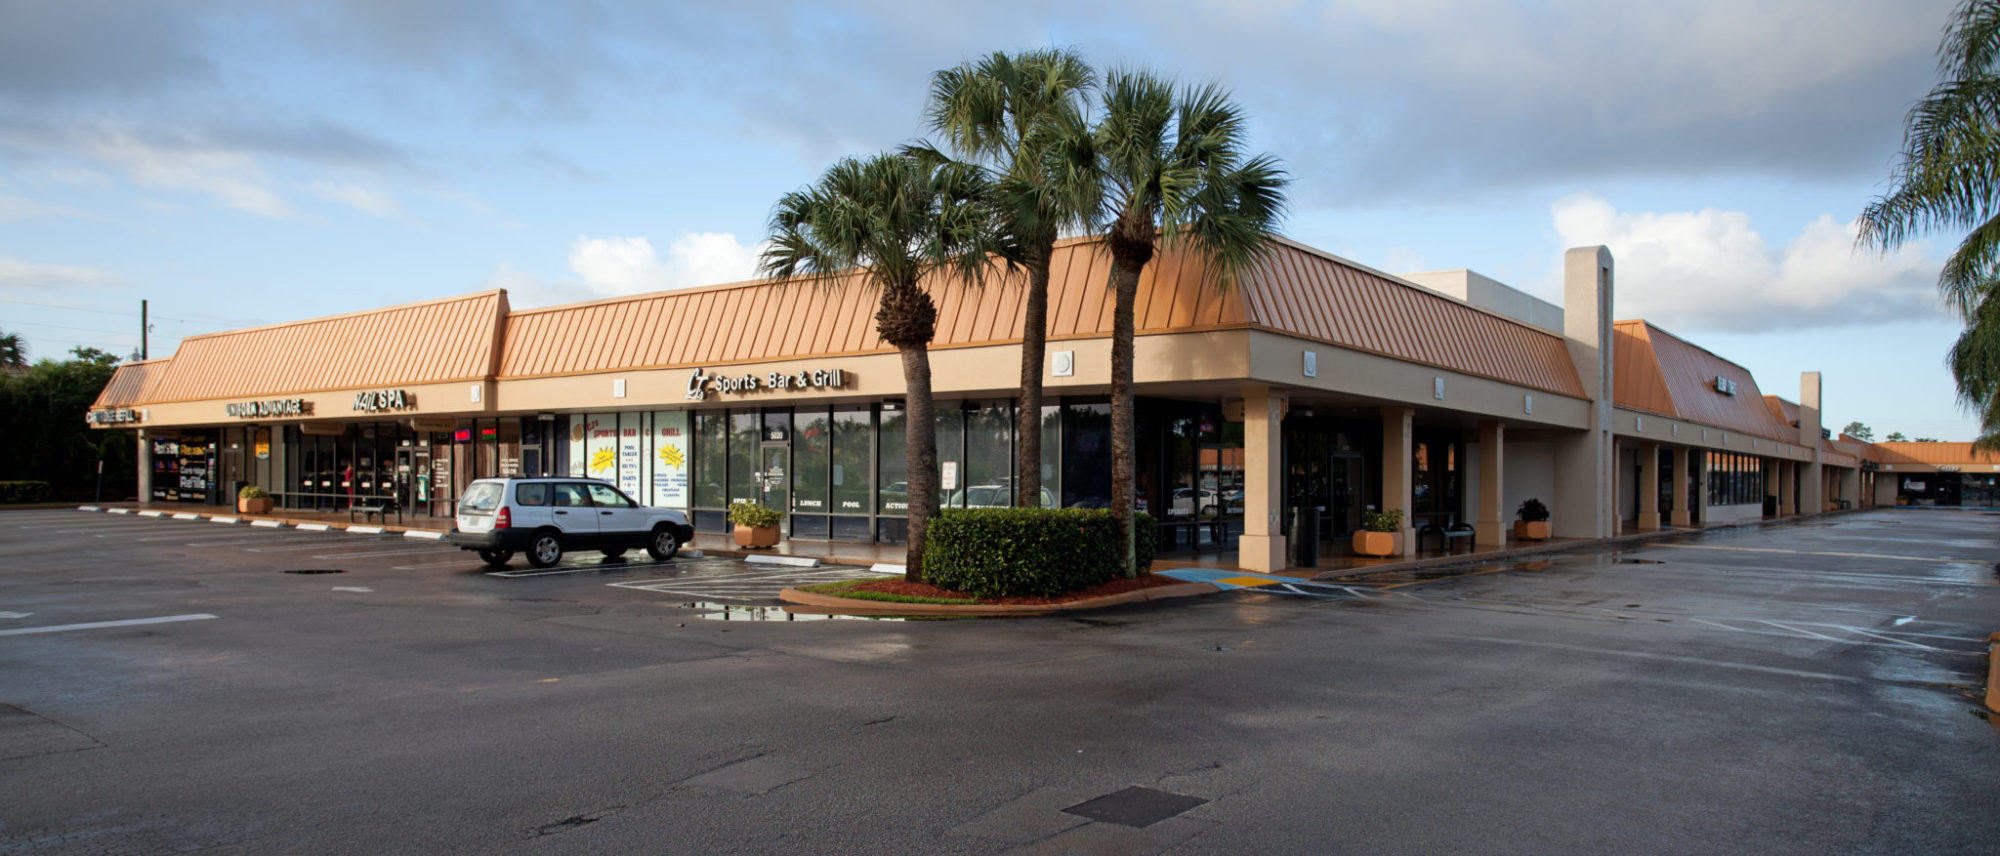 Jan. 17th, 2013 - Delray Beach, Florida: The Delray Commons Shopping Center owned by PEBB Enterprises.